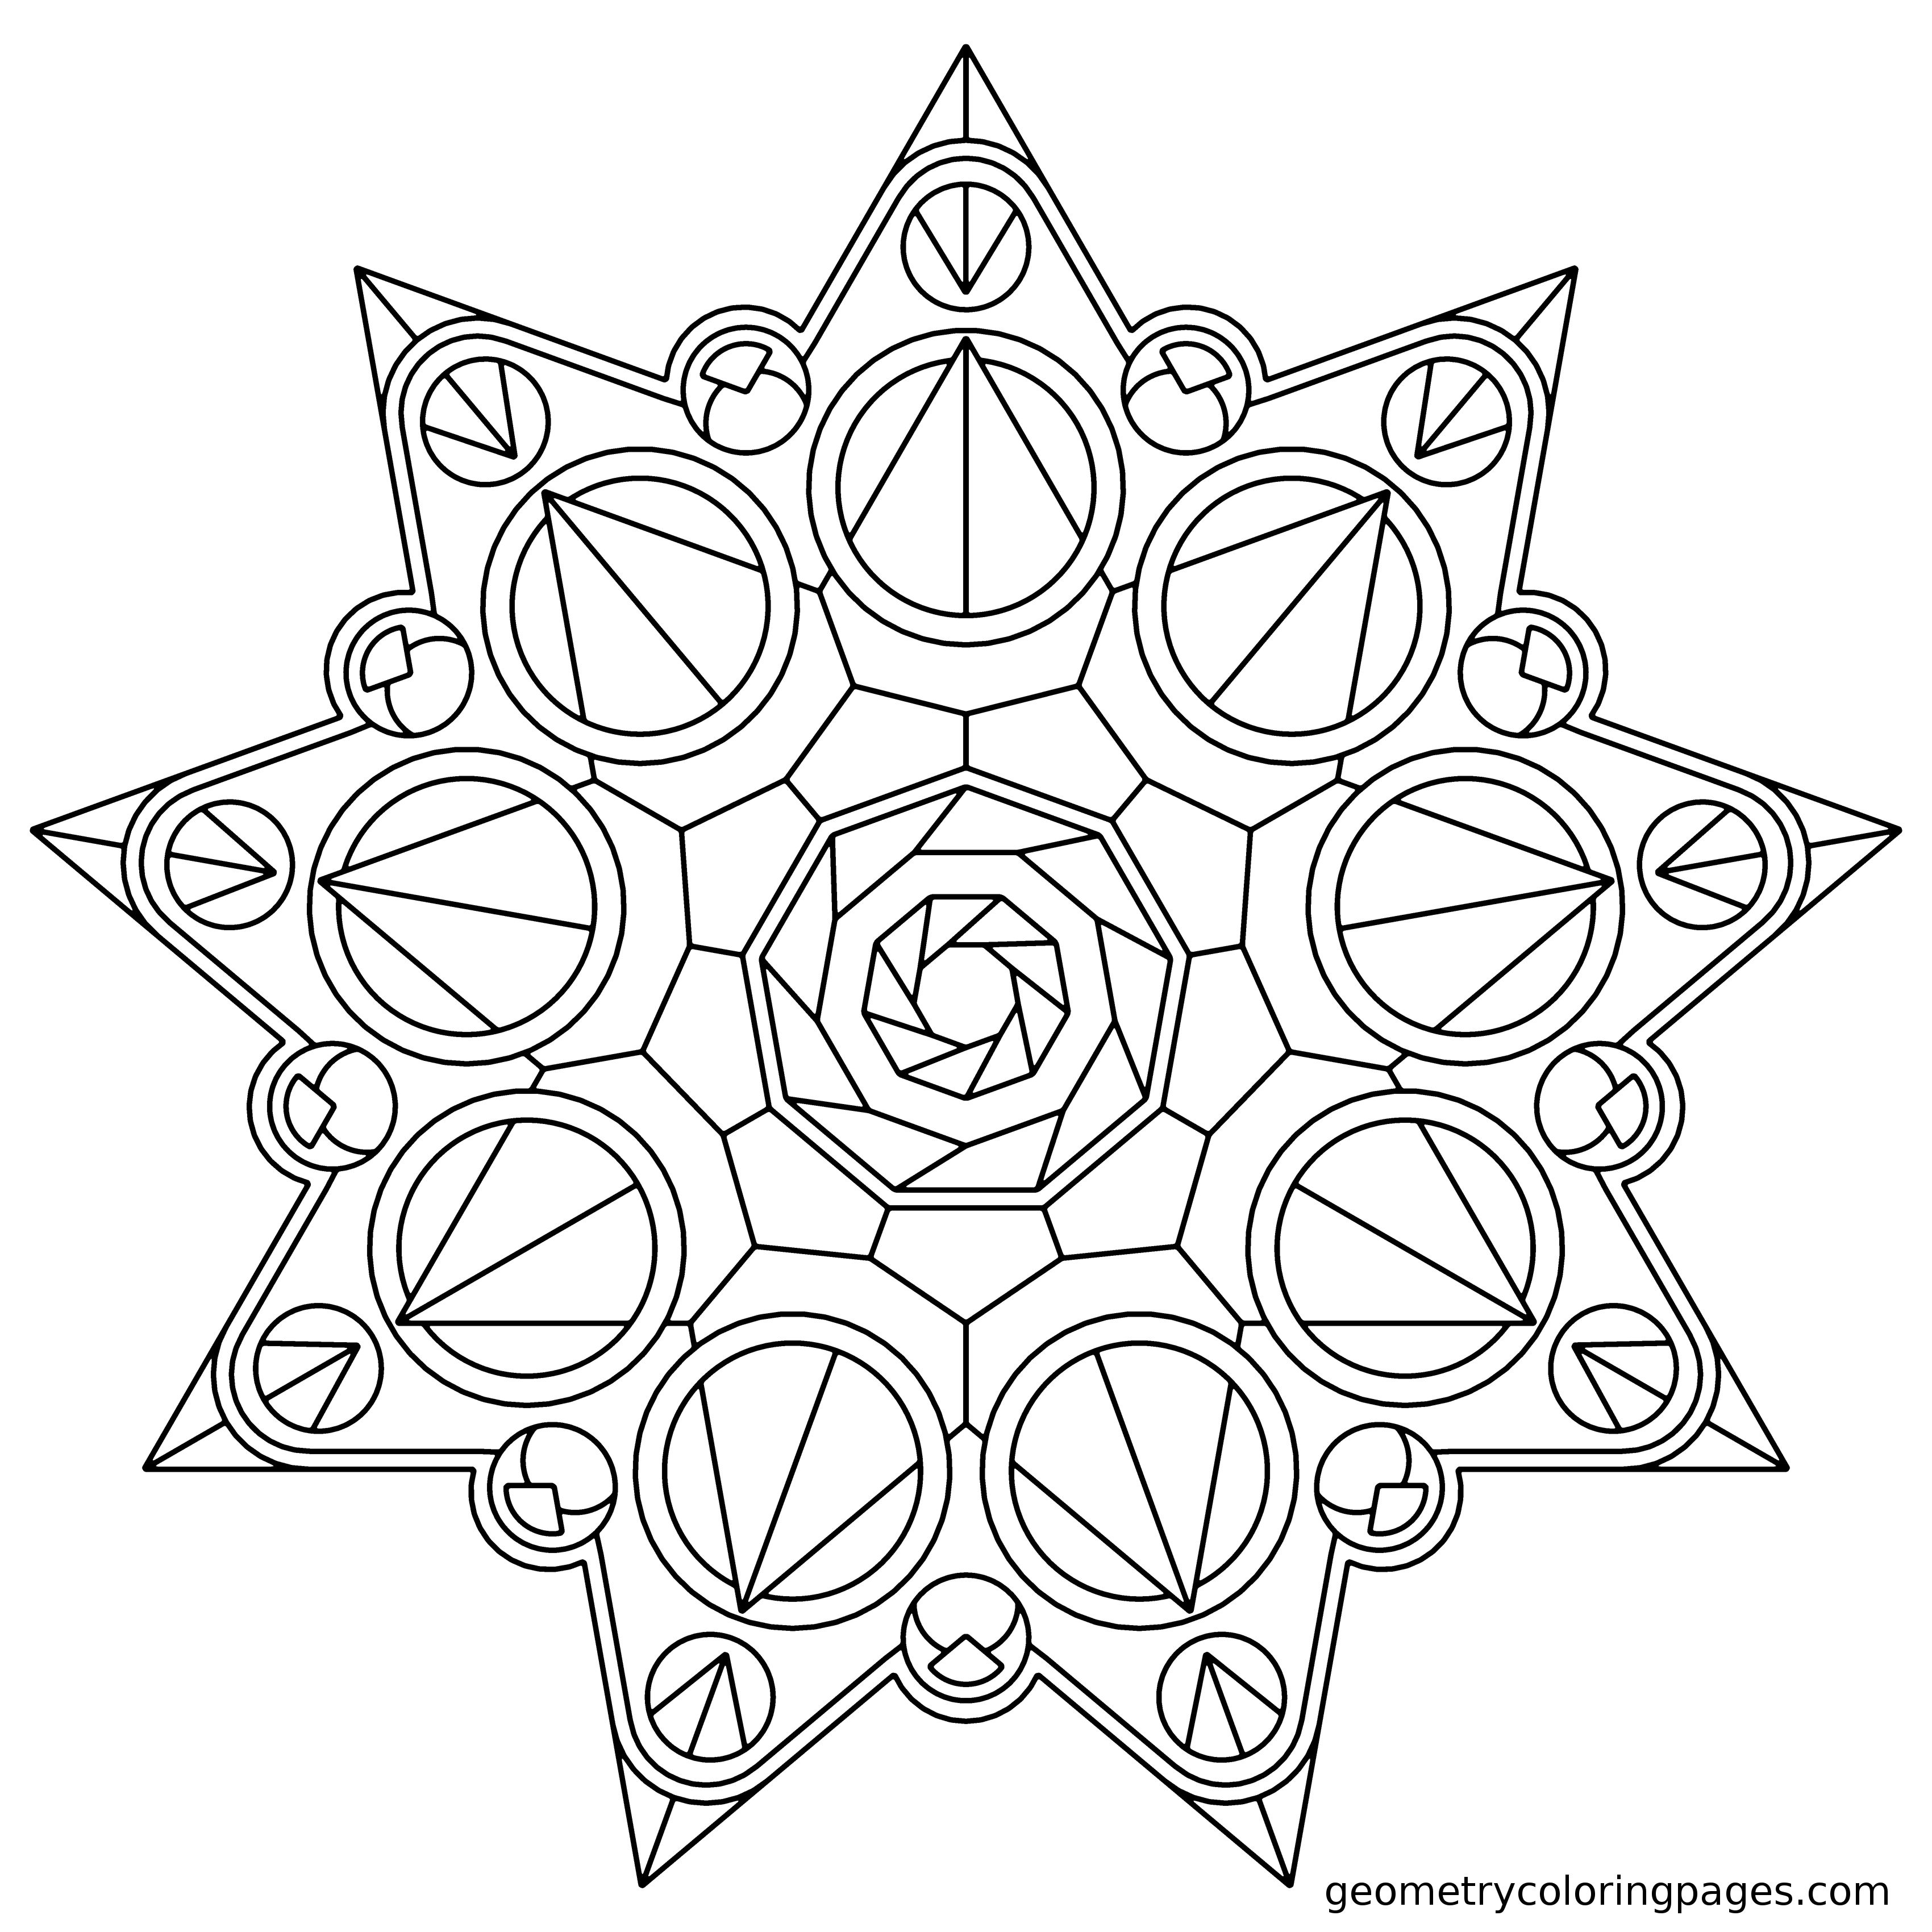 Crown Star Geometry Coloring Pages Geometric Coloring Pages Pattern Coloring Pages Mandala Coloring